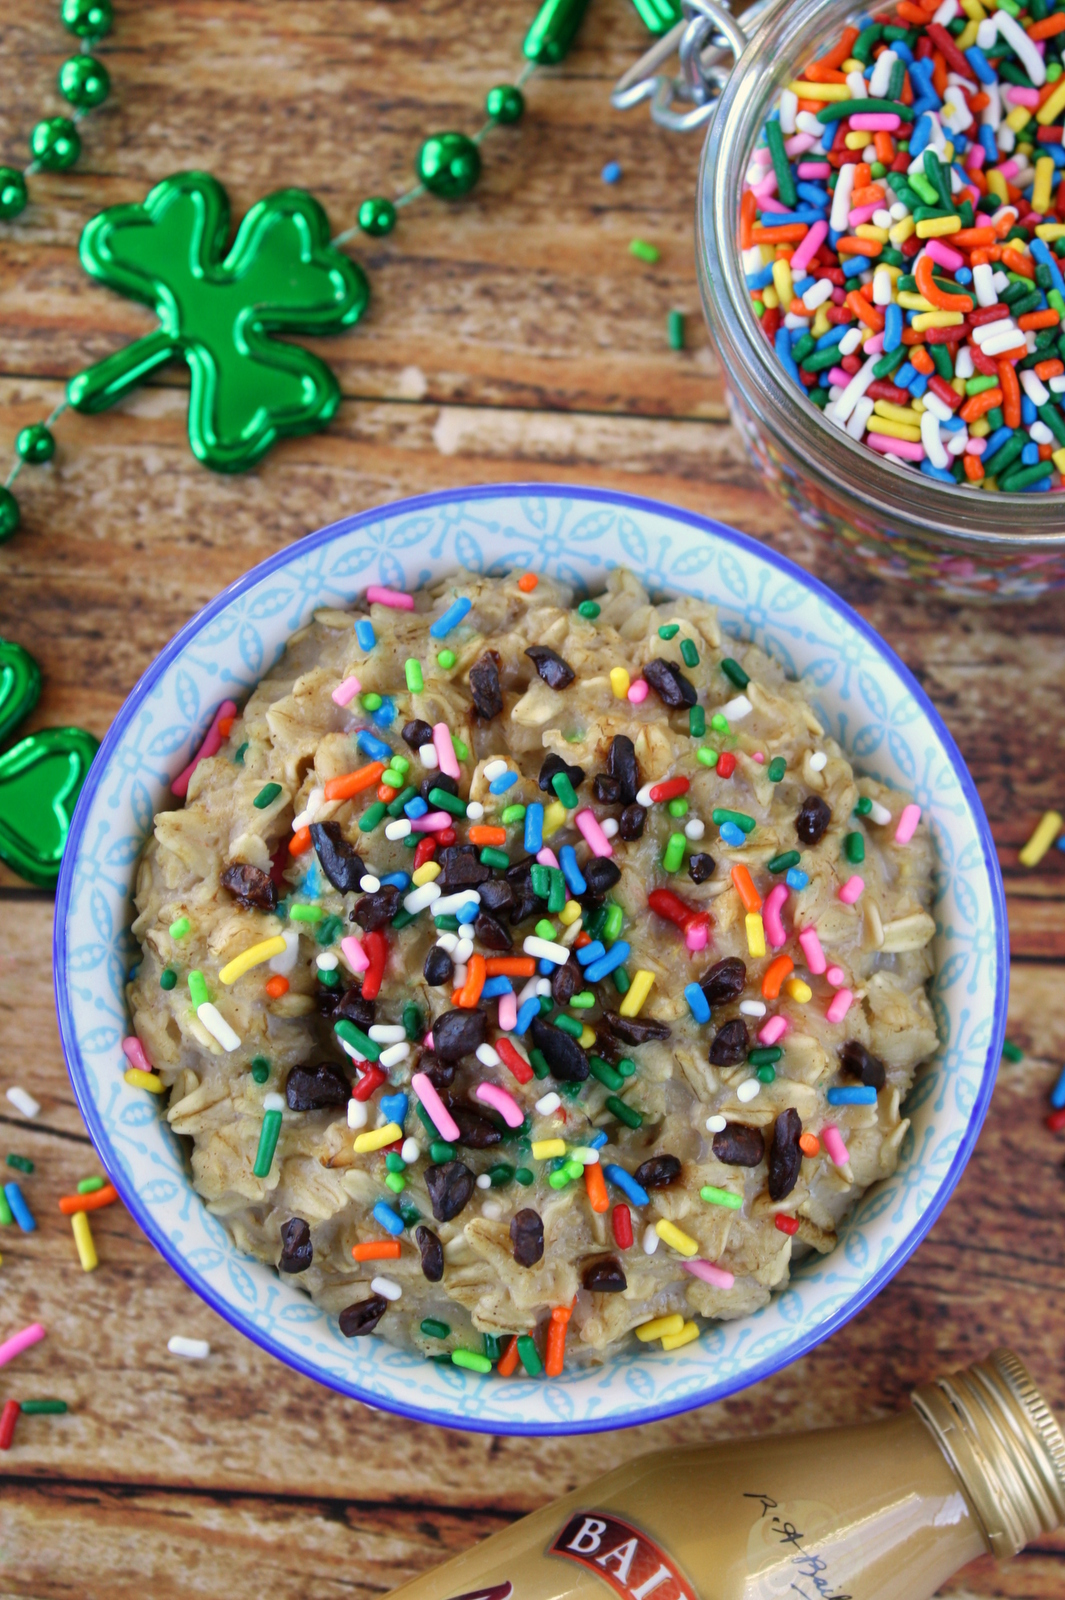 Irish cream oatmeal